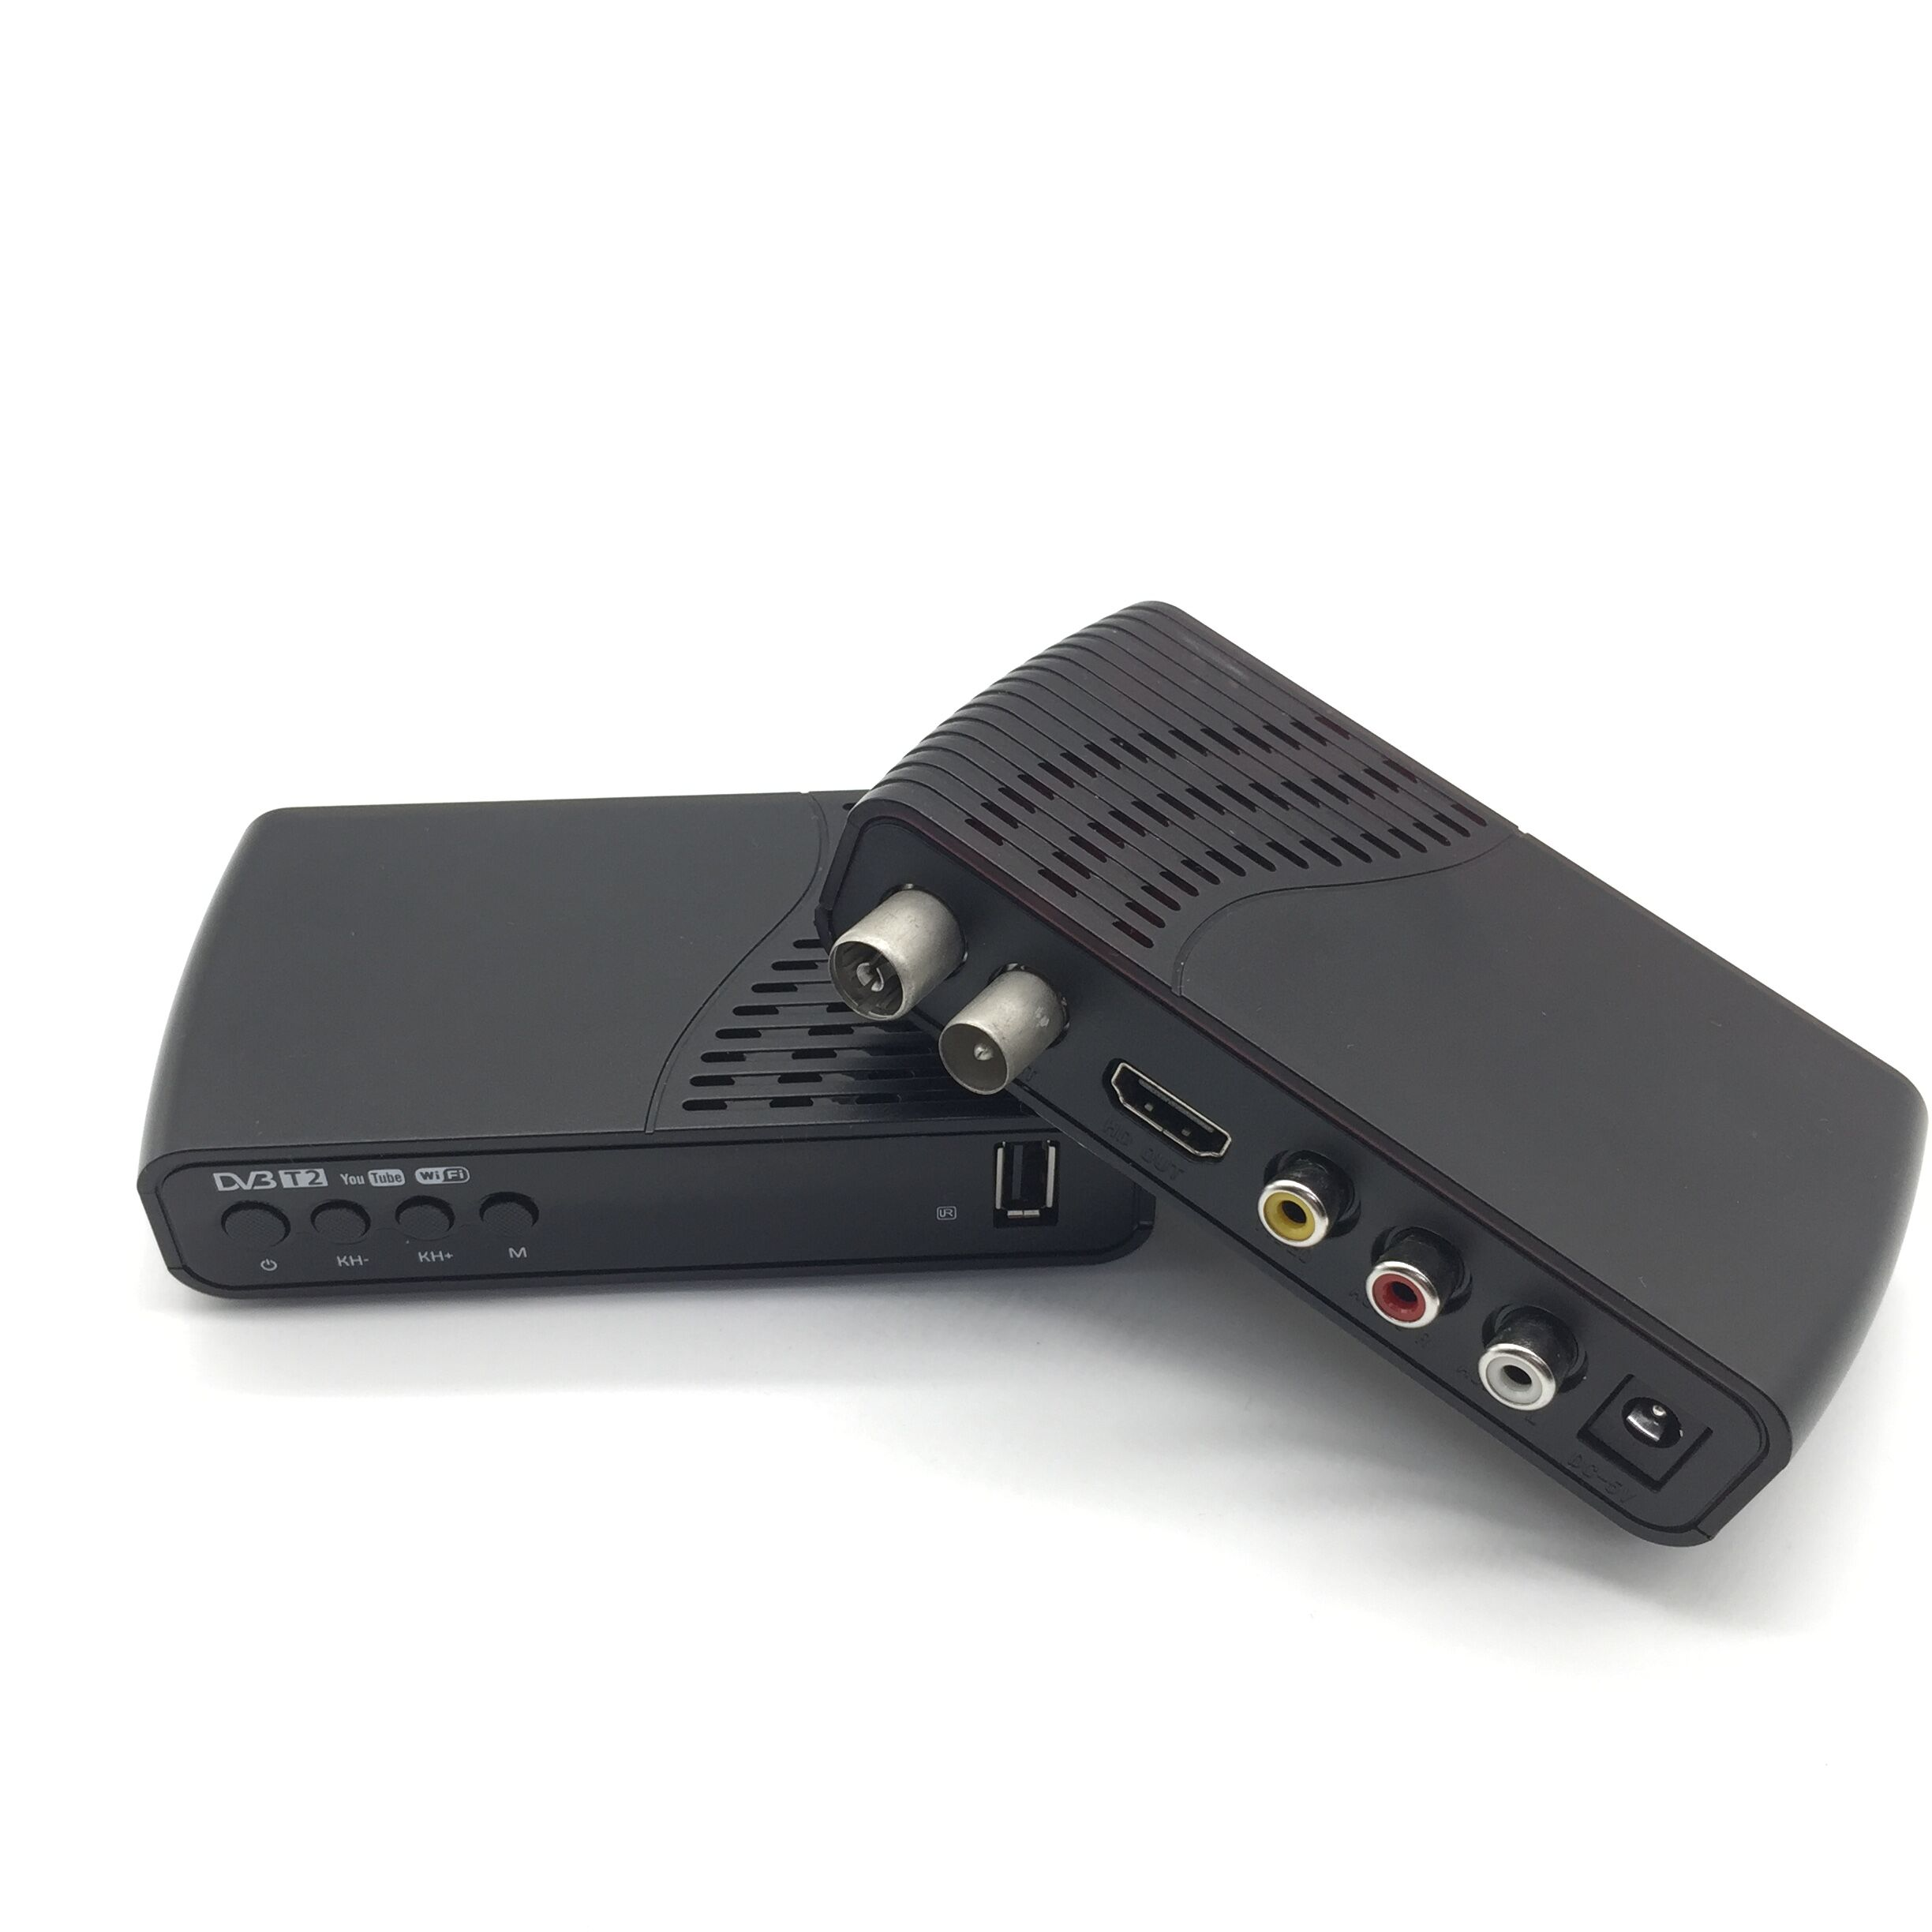 Digital HD 1080P DVB-T2 TV Box FTA DVB T2 receptor Set Top Box